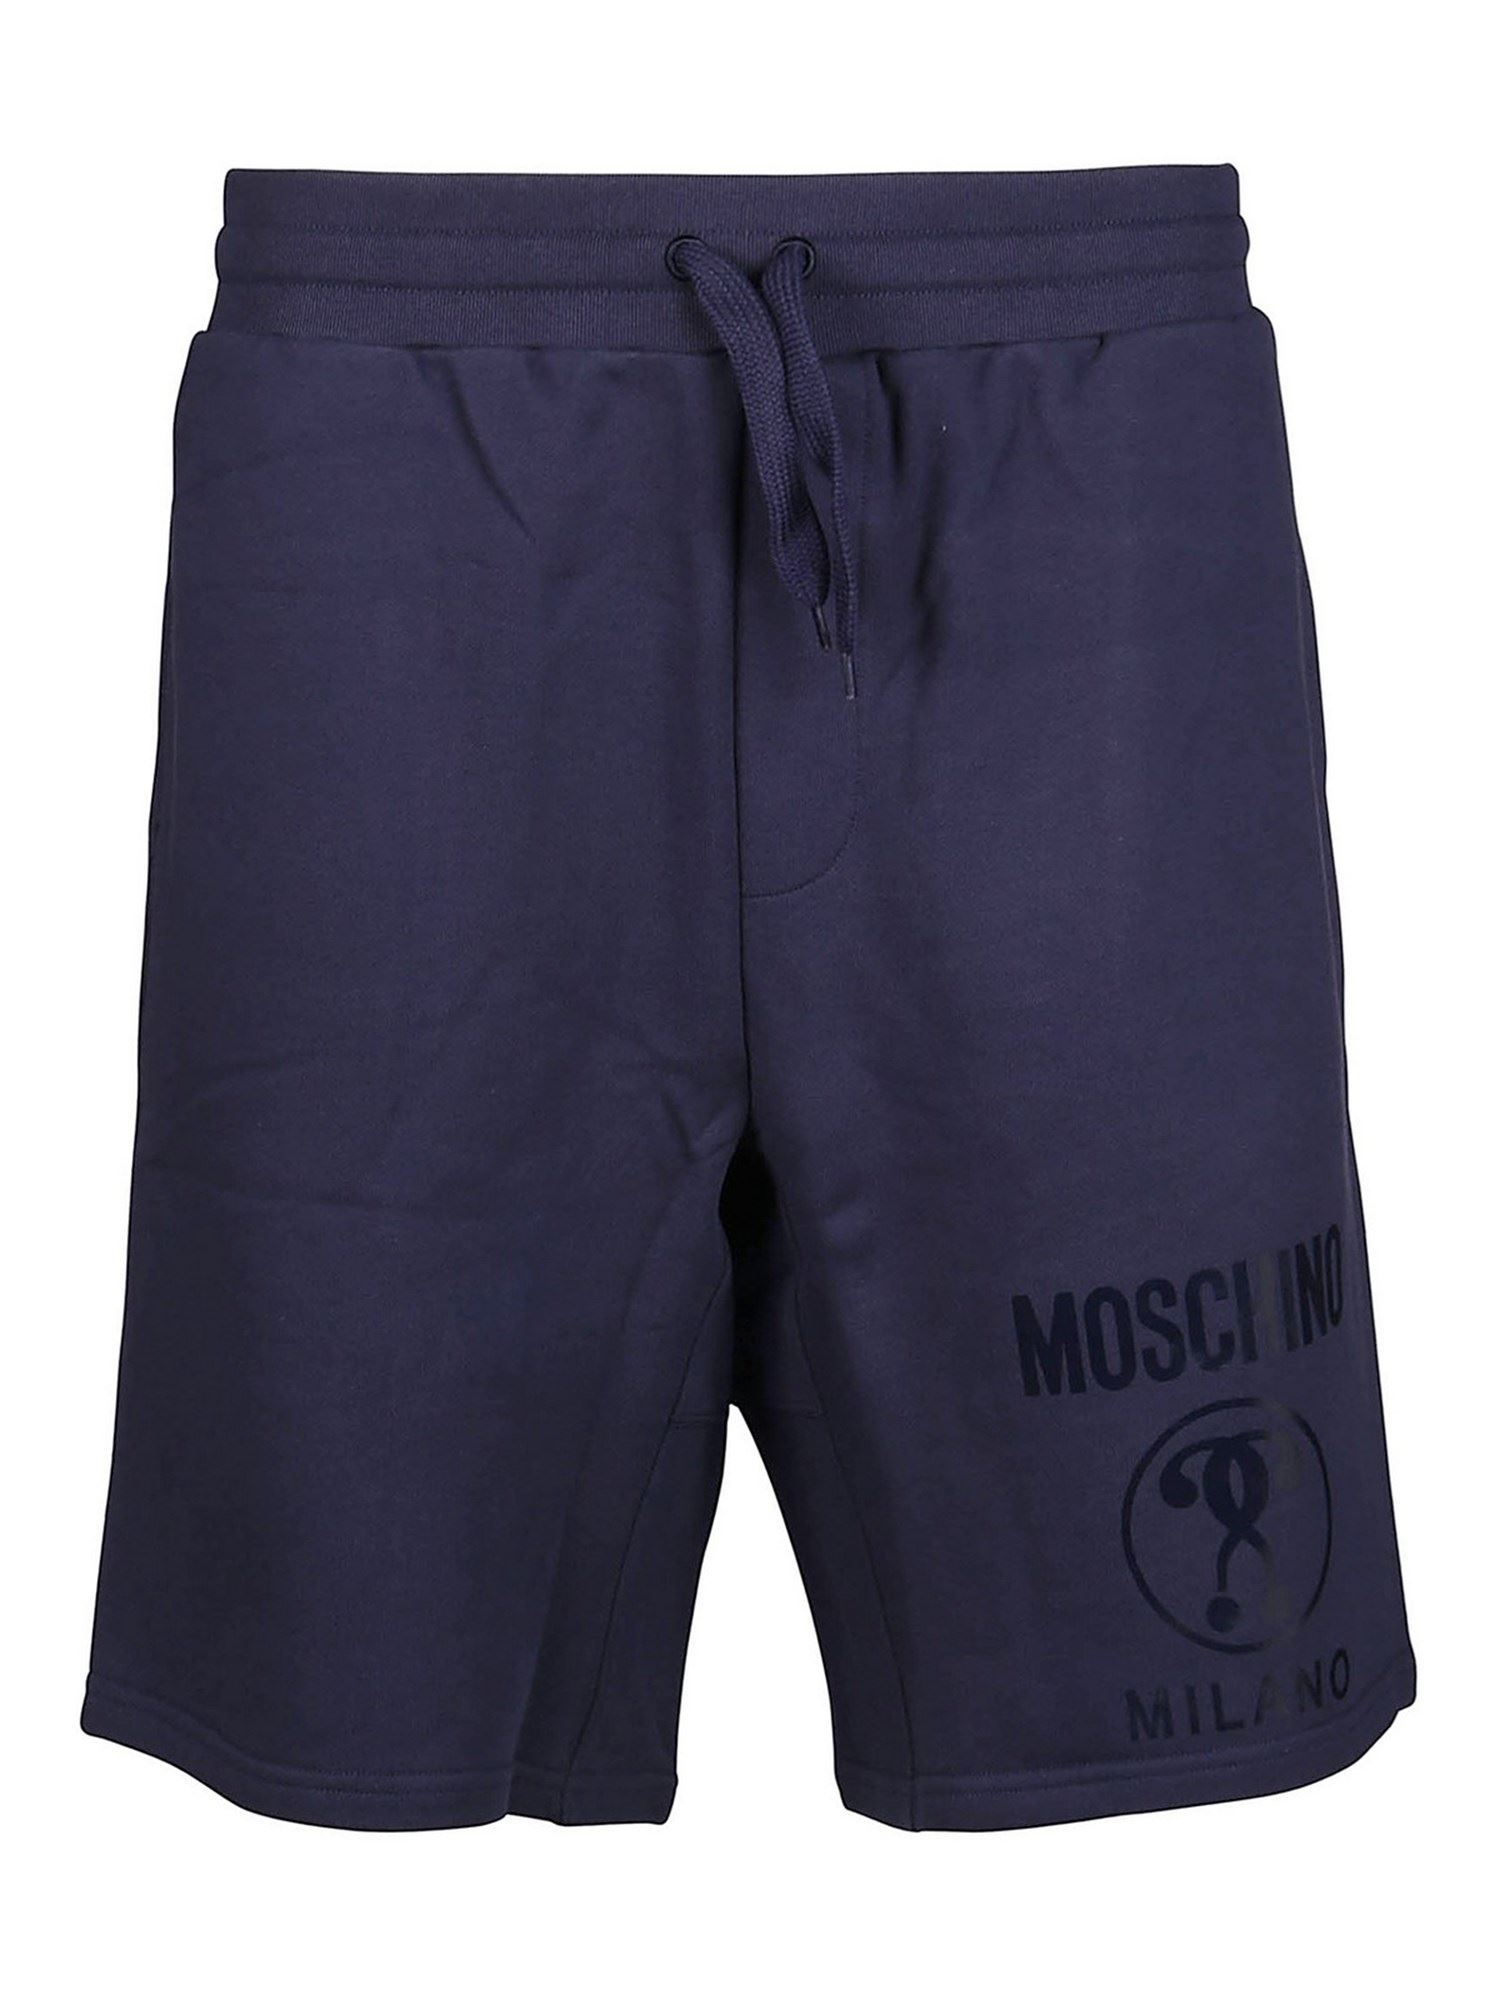 Moschino DOUBLE QUESTION MARK SHORTS IN BLUE